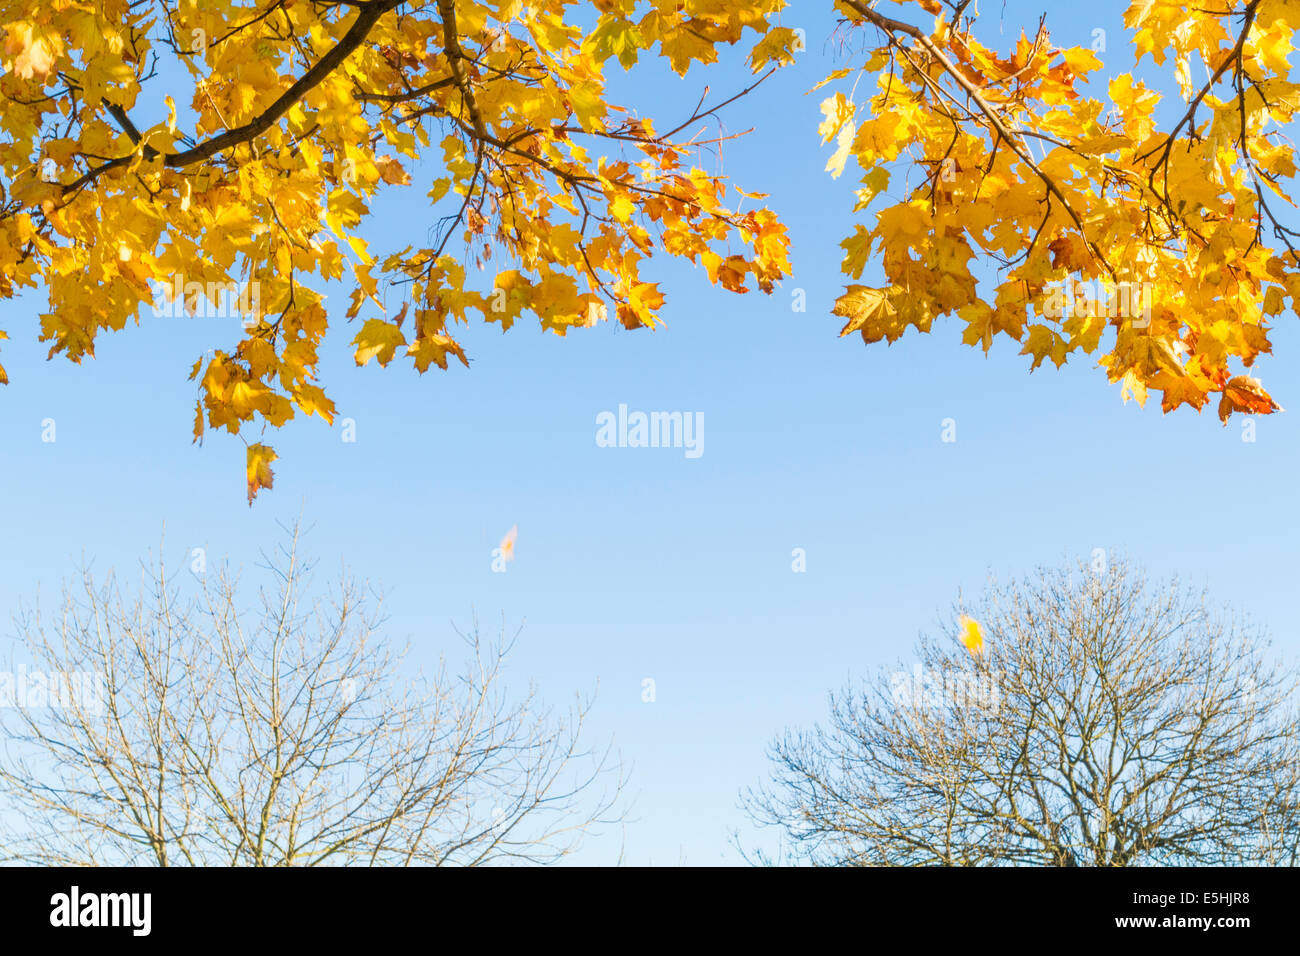 Autumn leaves falling from a Norway Maple tree (Acer platanoides) with other bare trees in the background, Nottinghamshire, - Stock Image